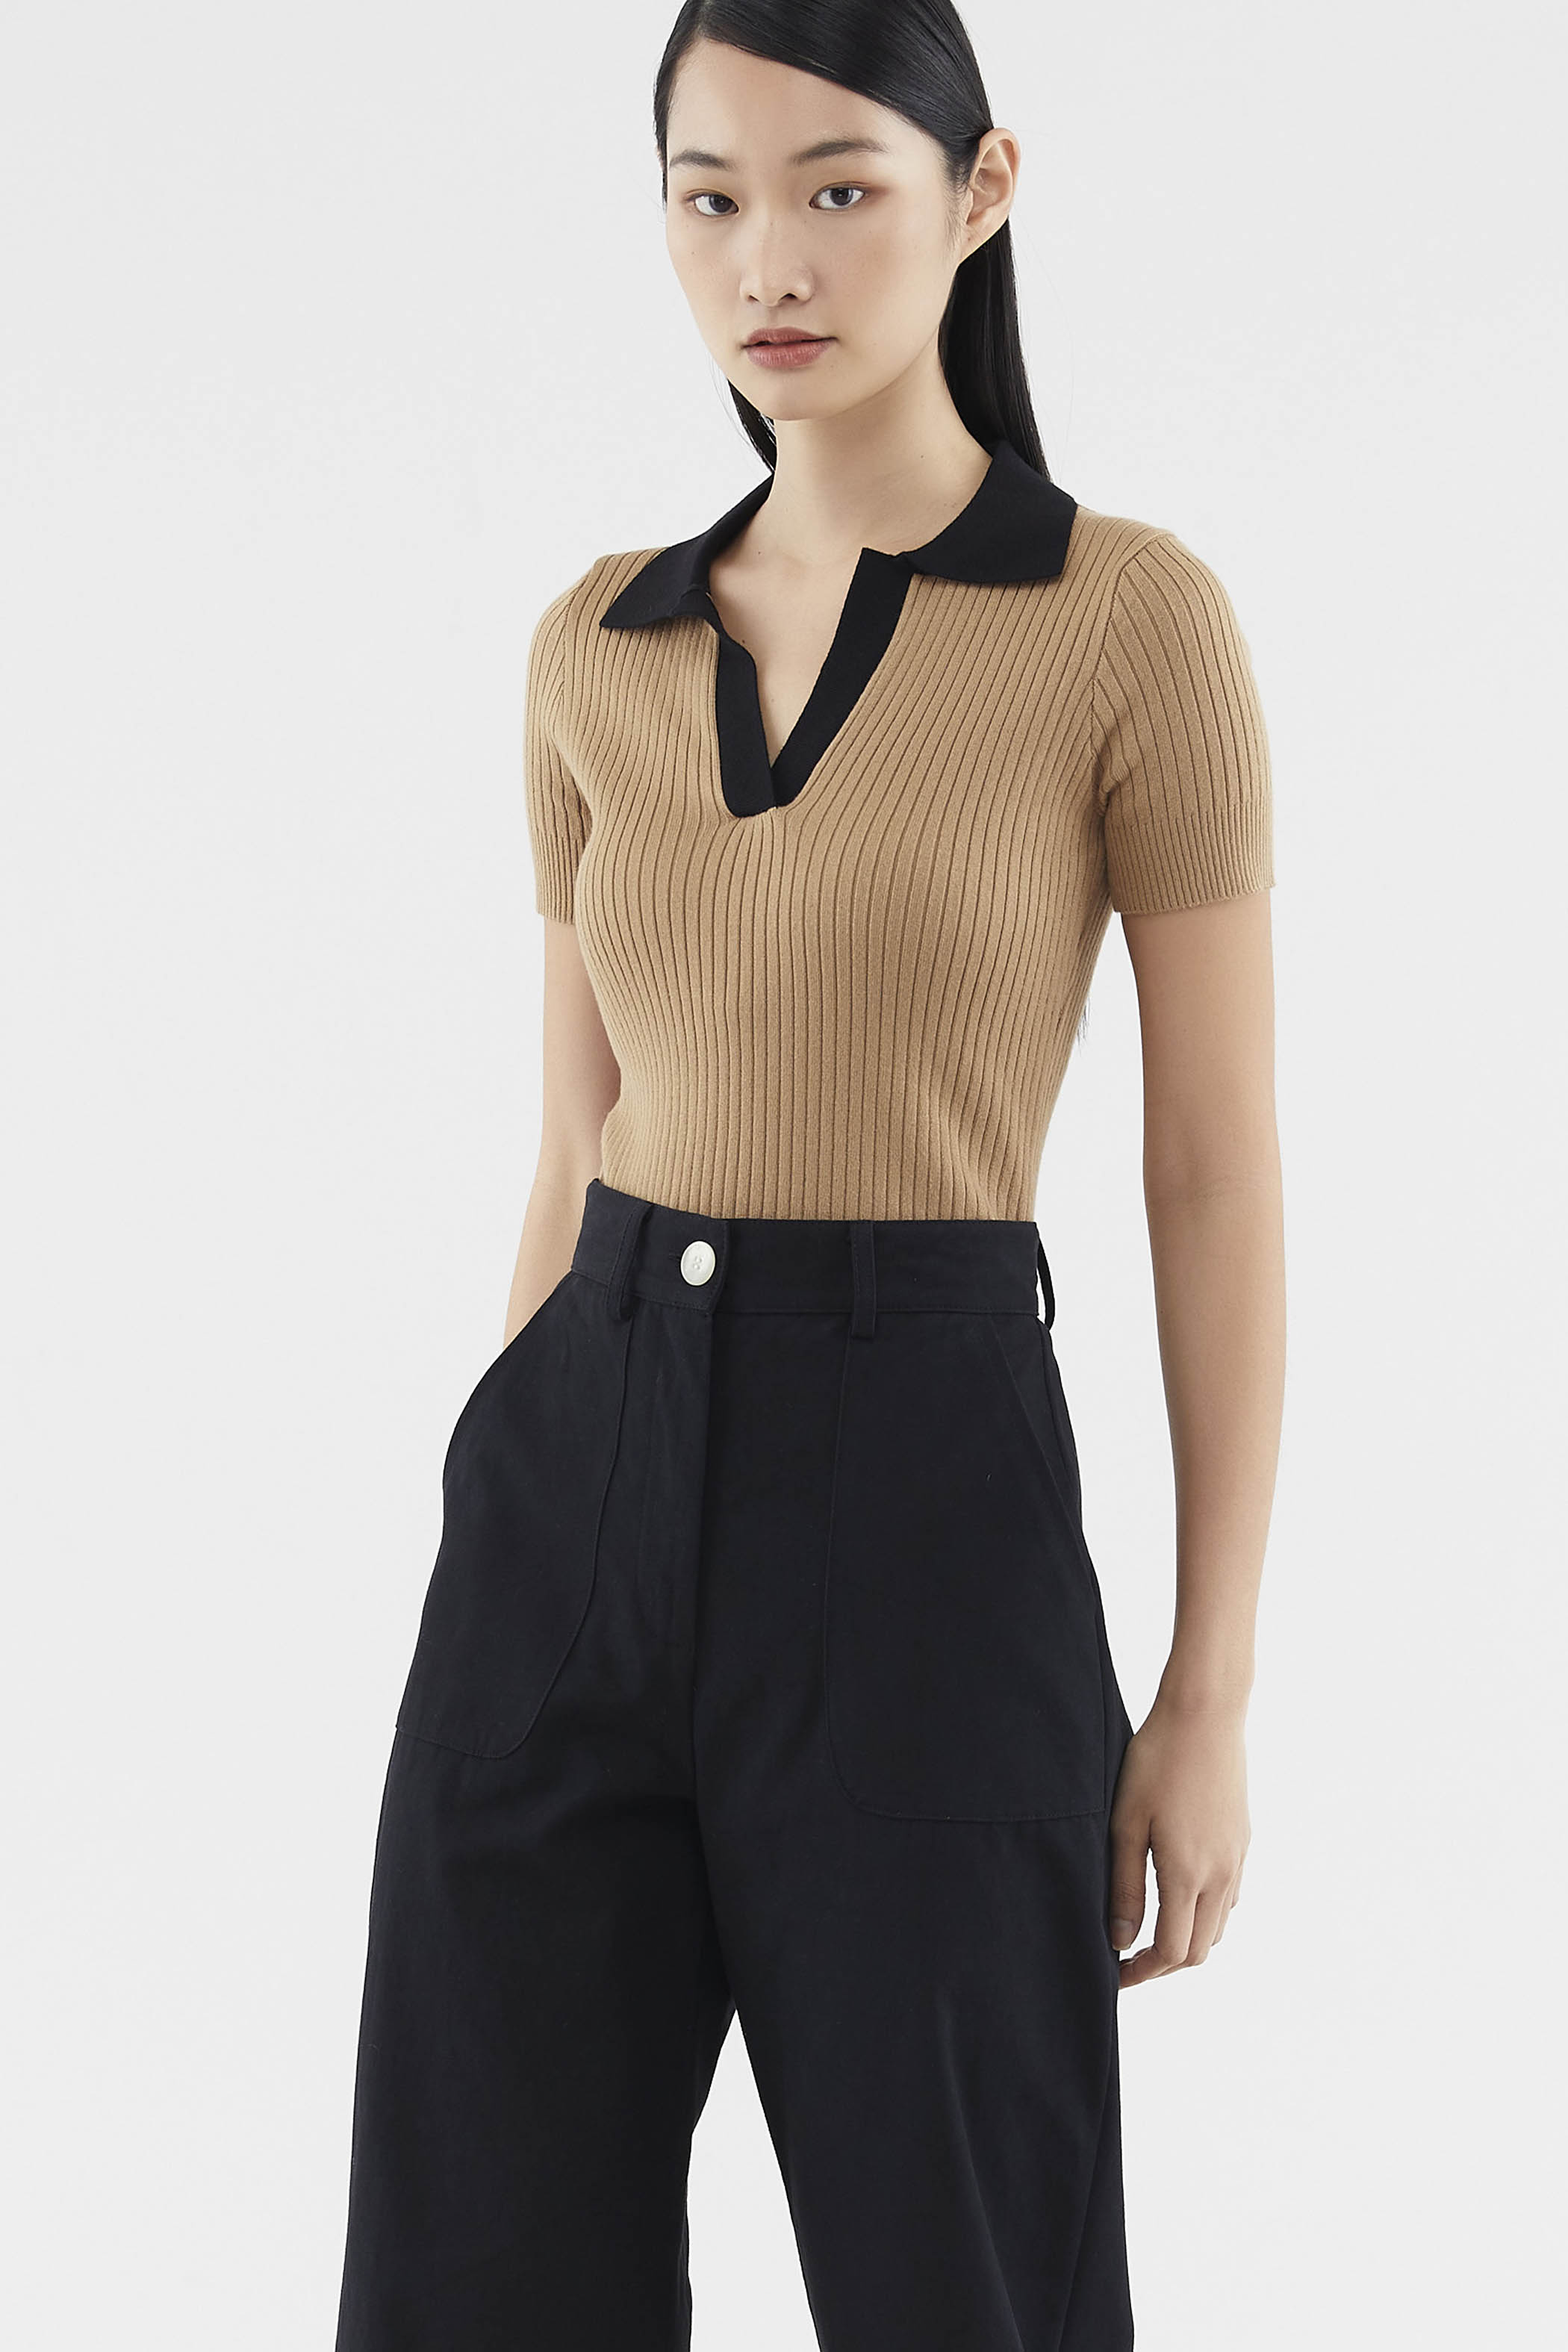 Jemira Collared Knit Top